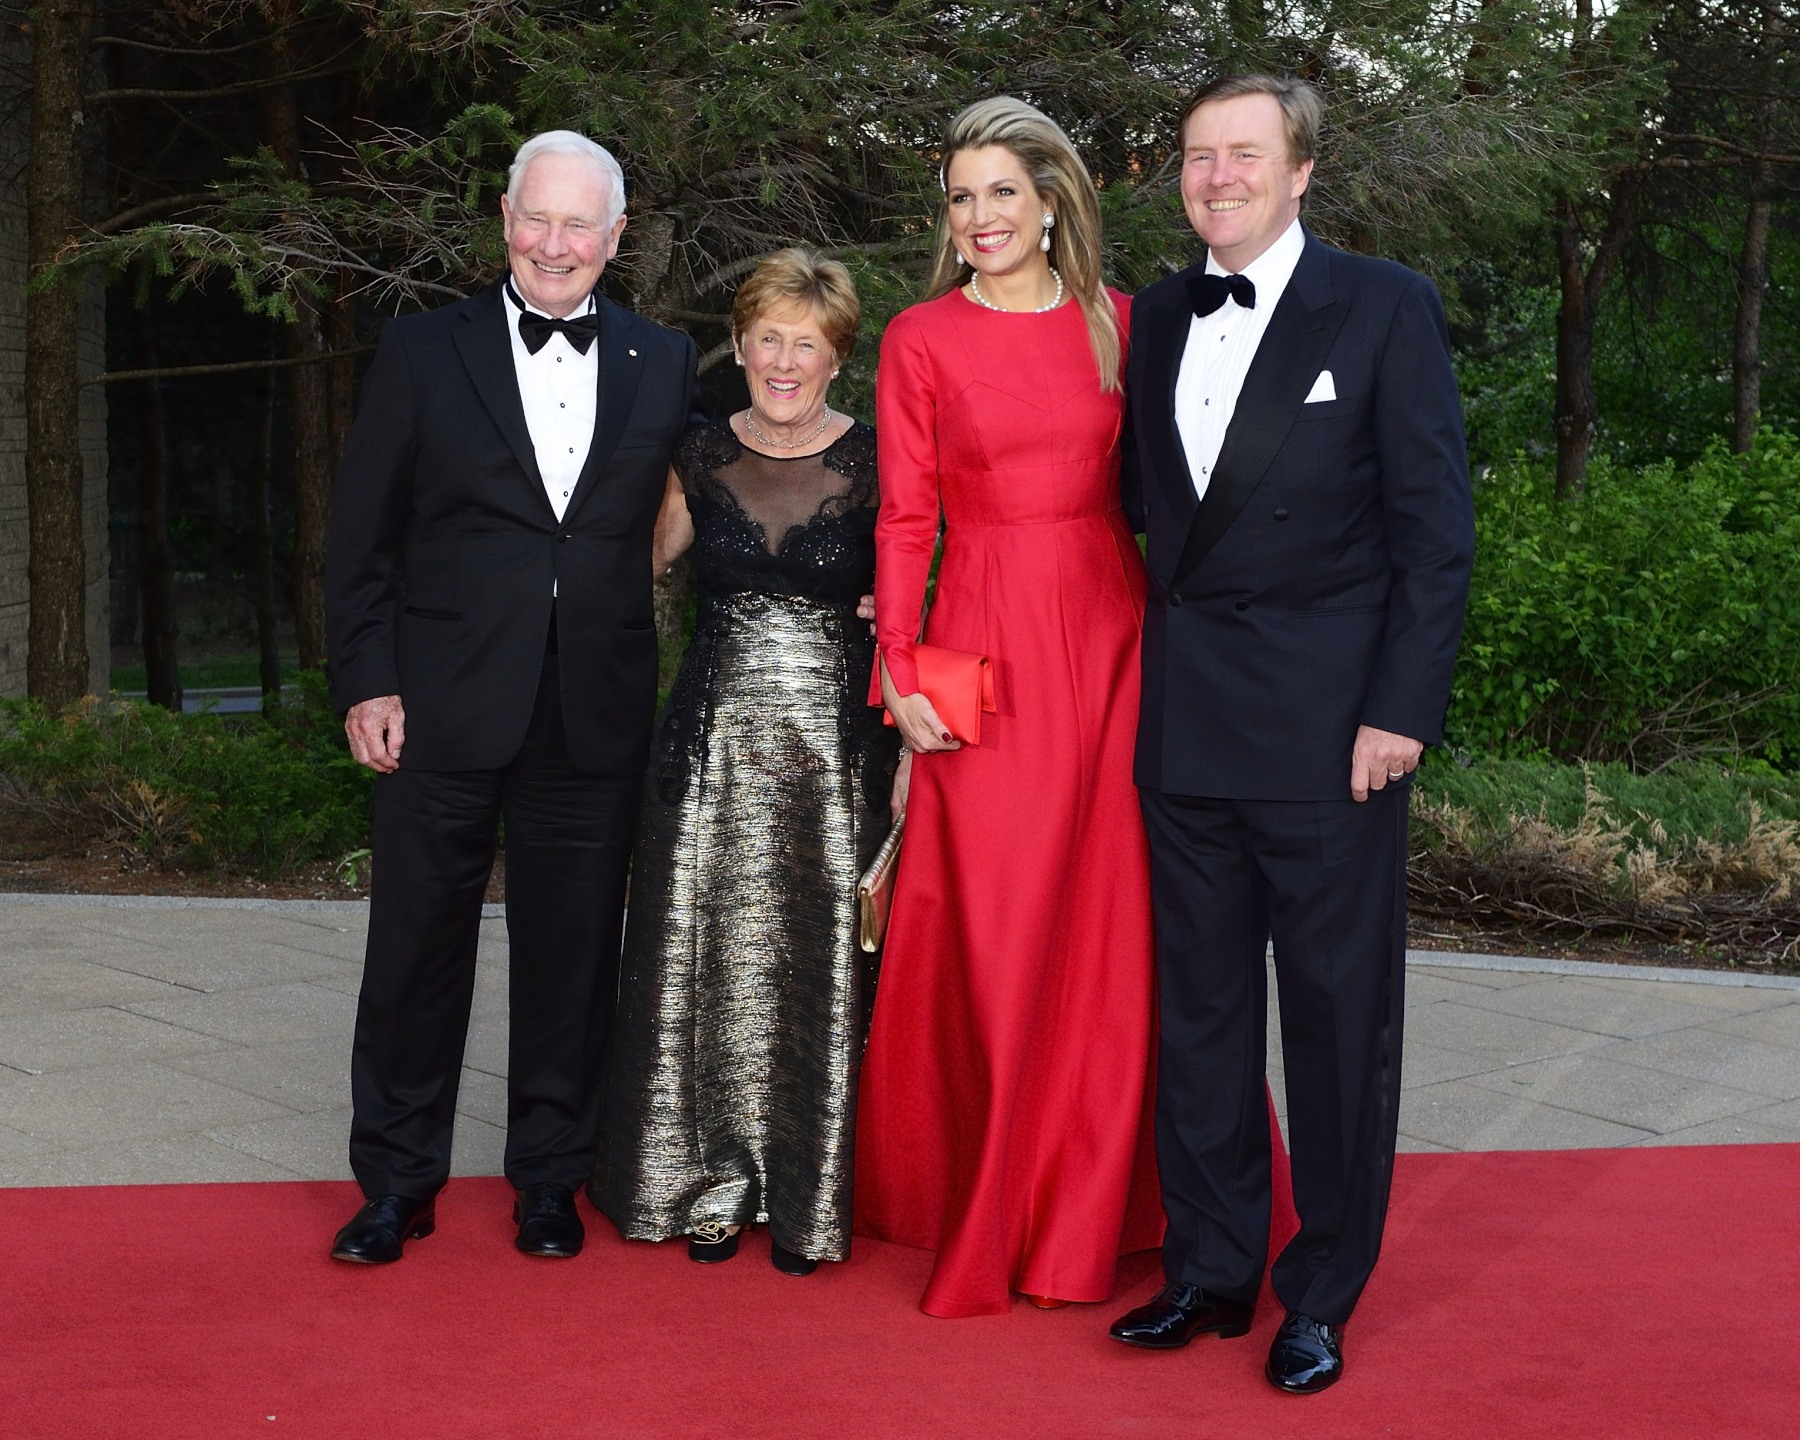 Their Excellencies the Right Honourable David Johnston, Governor General of Canada, and Mrs. Sharon Johnston attended a concert hosted by Their Majesties King Willem-Alexander and Queen Máxima of the Netherlands.